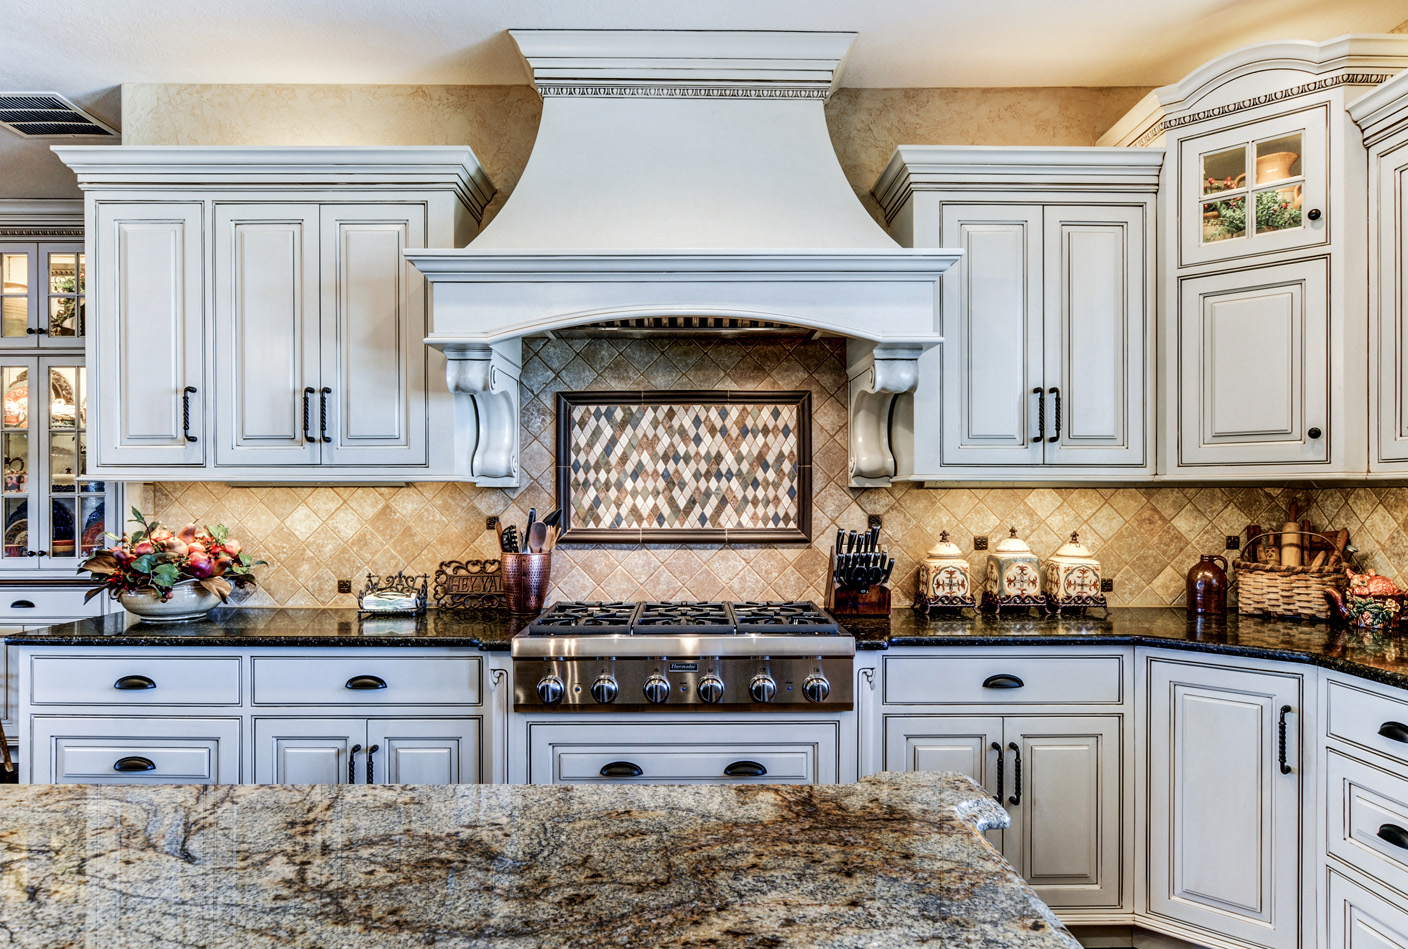 built-by-brett-custom-home-springfield-mo-13735-lawrence-2100-019.jpg